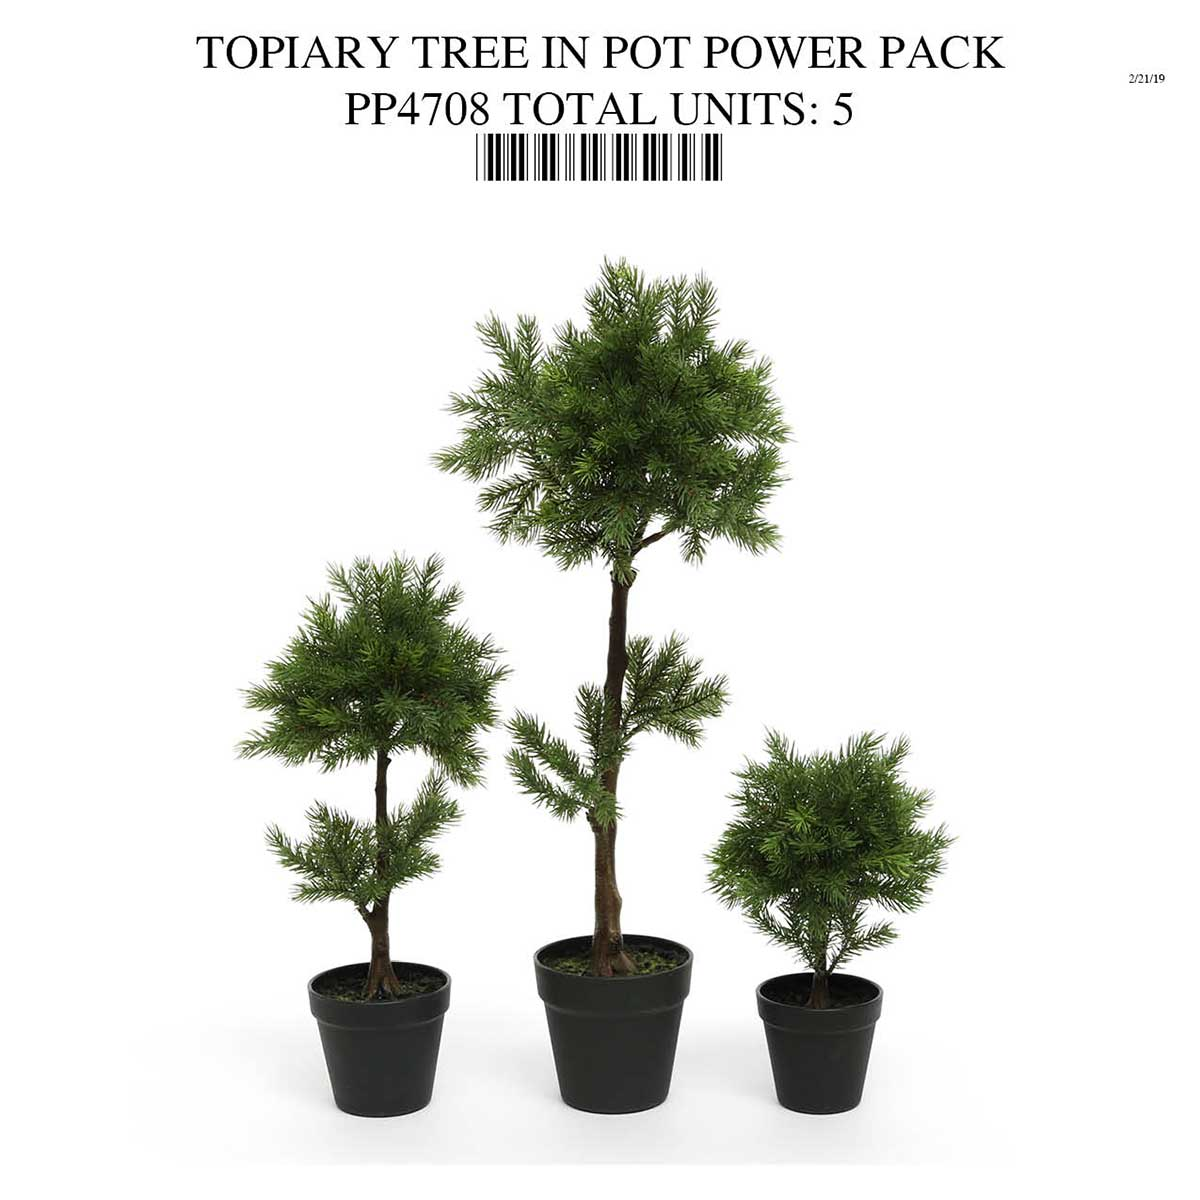 TOPIARY TREE IN POT POWER PACK PP4708